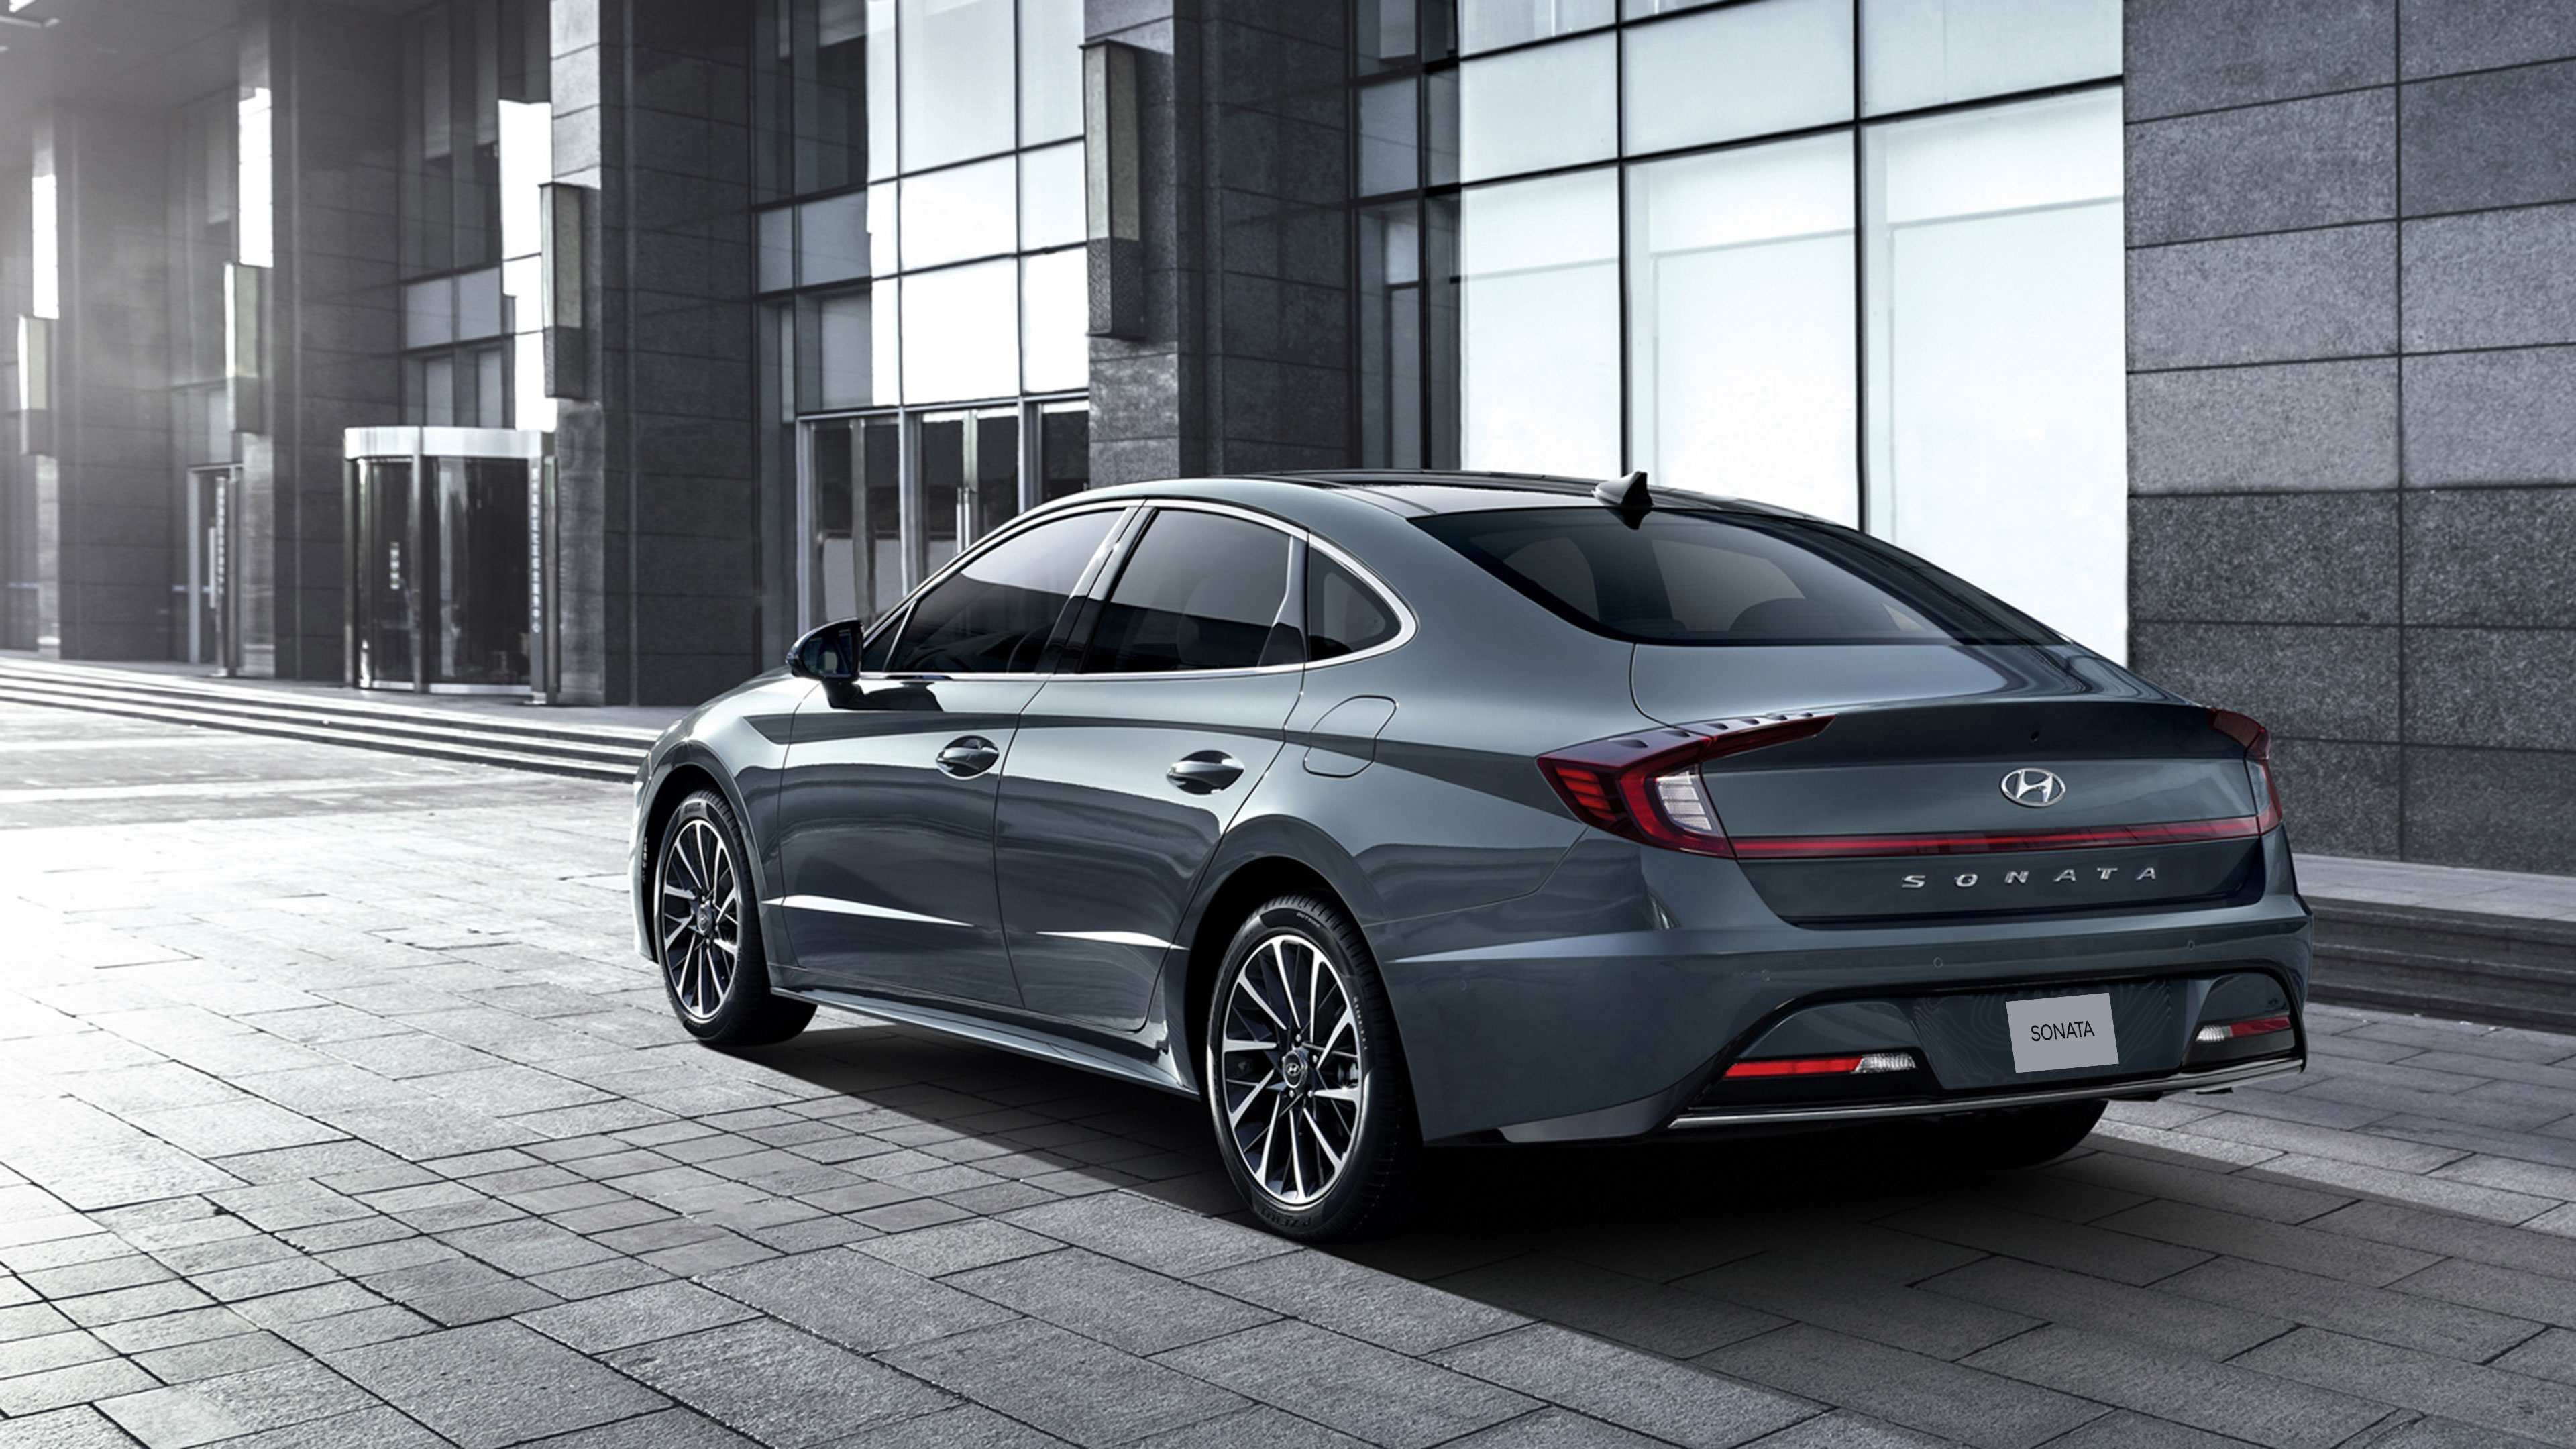 51 The Hyundai Sonata 2020 Release Date Speed Test